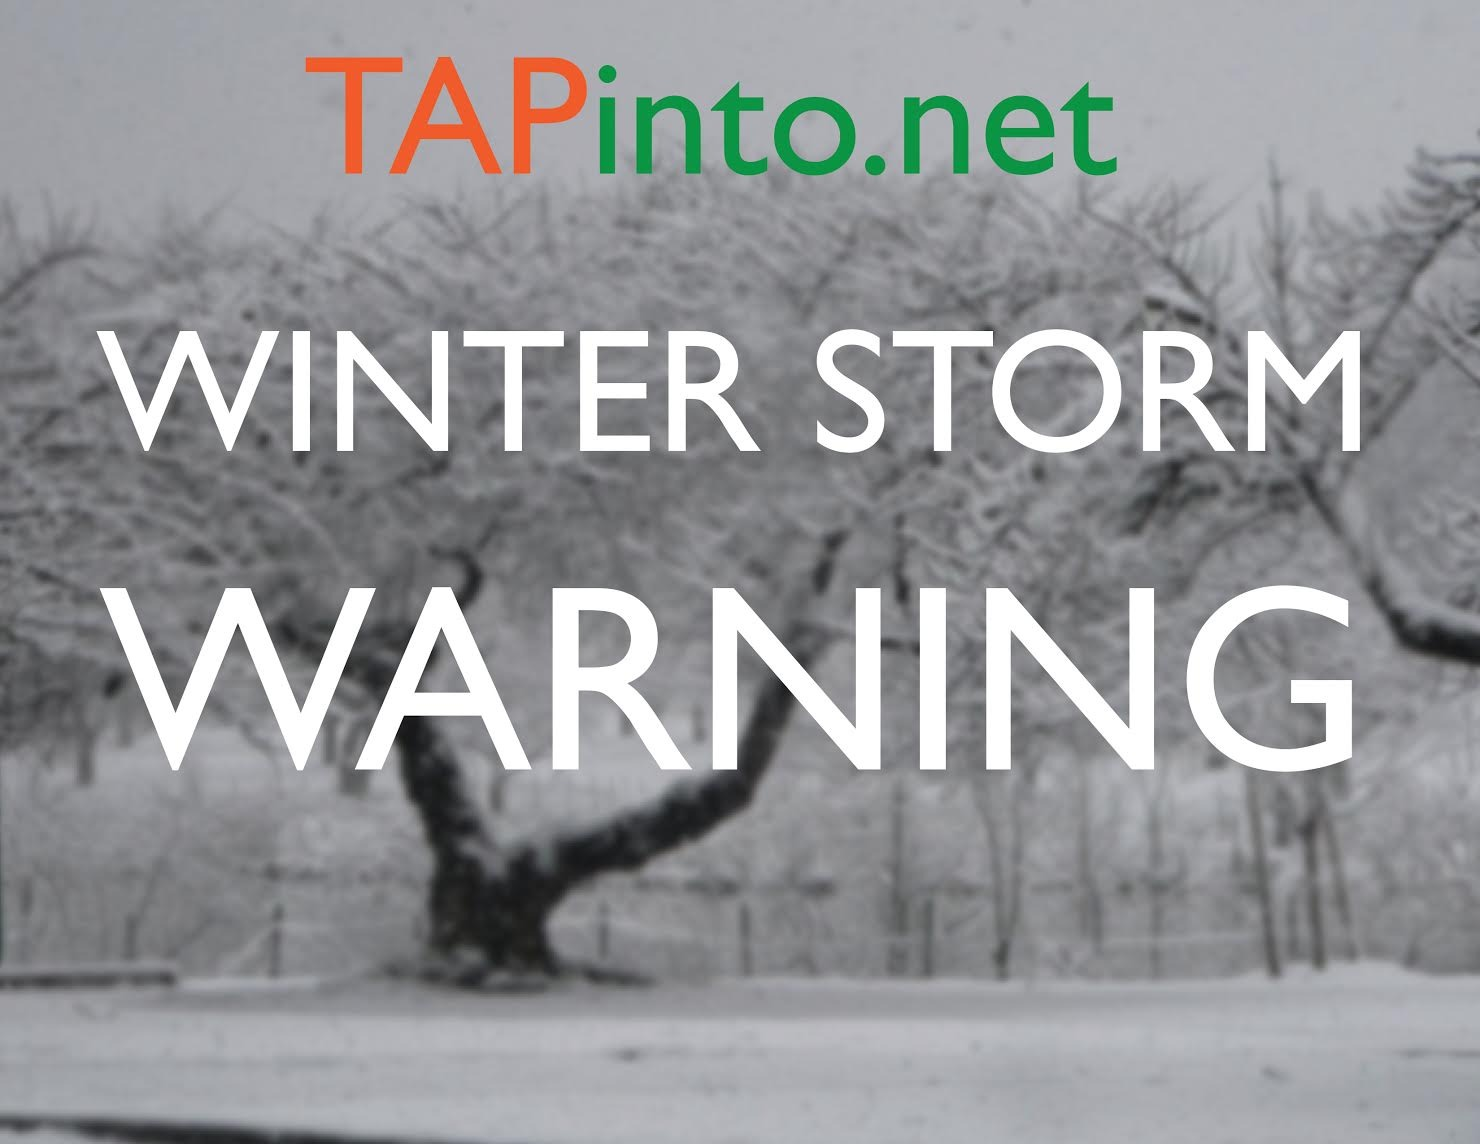 609acede66a11b5d2a31_Winter_Storm_Warning_-_TAP_graphic.jpg